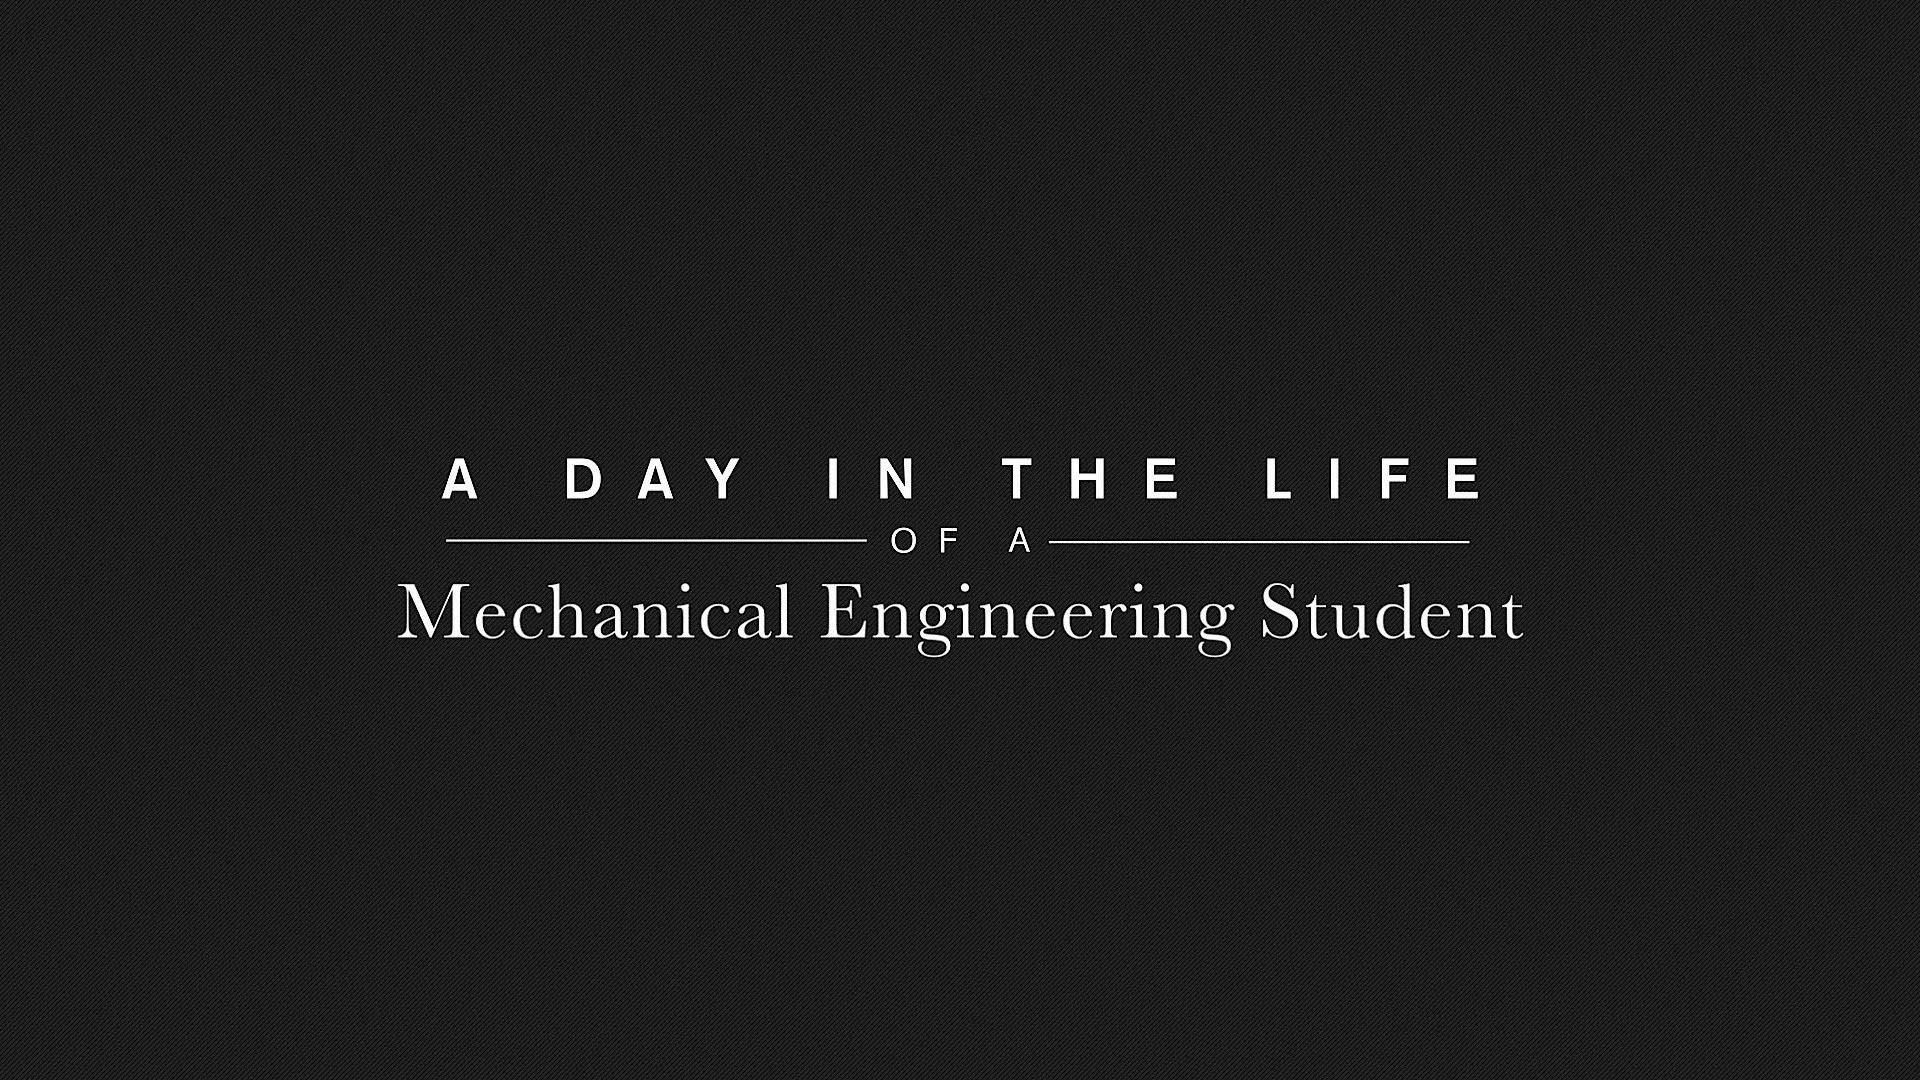 A Day in the Life of a Mechanical Engineering Student